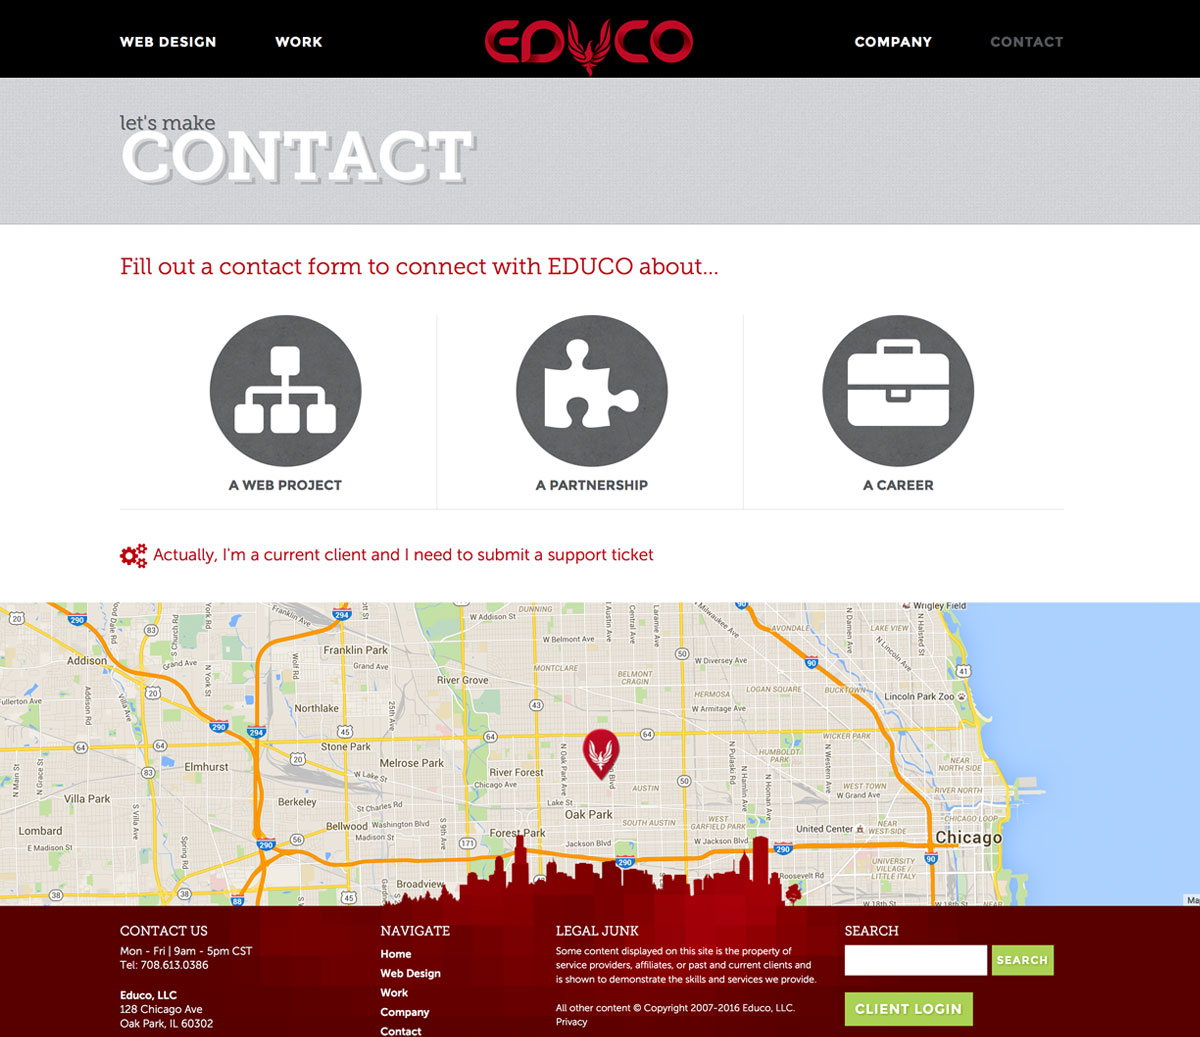 EDUCO: Best Chicago Web Design Firm with a Well Designed Lead Generation Contact Experience